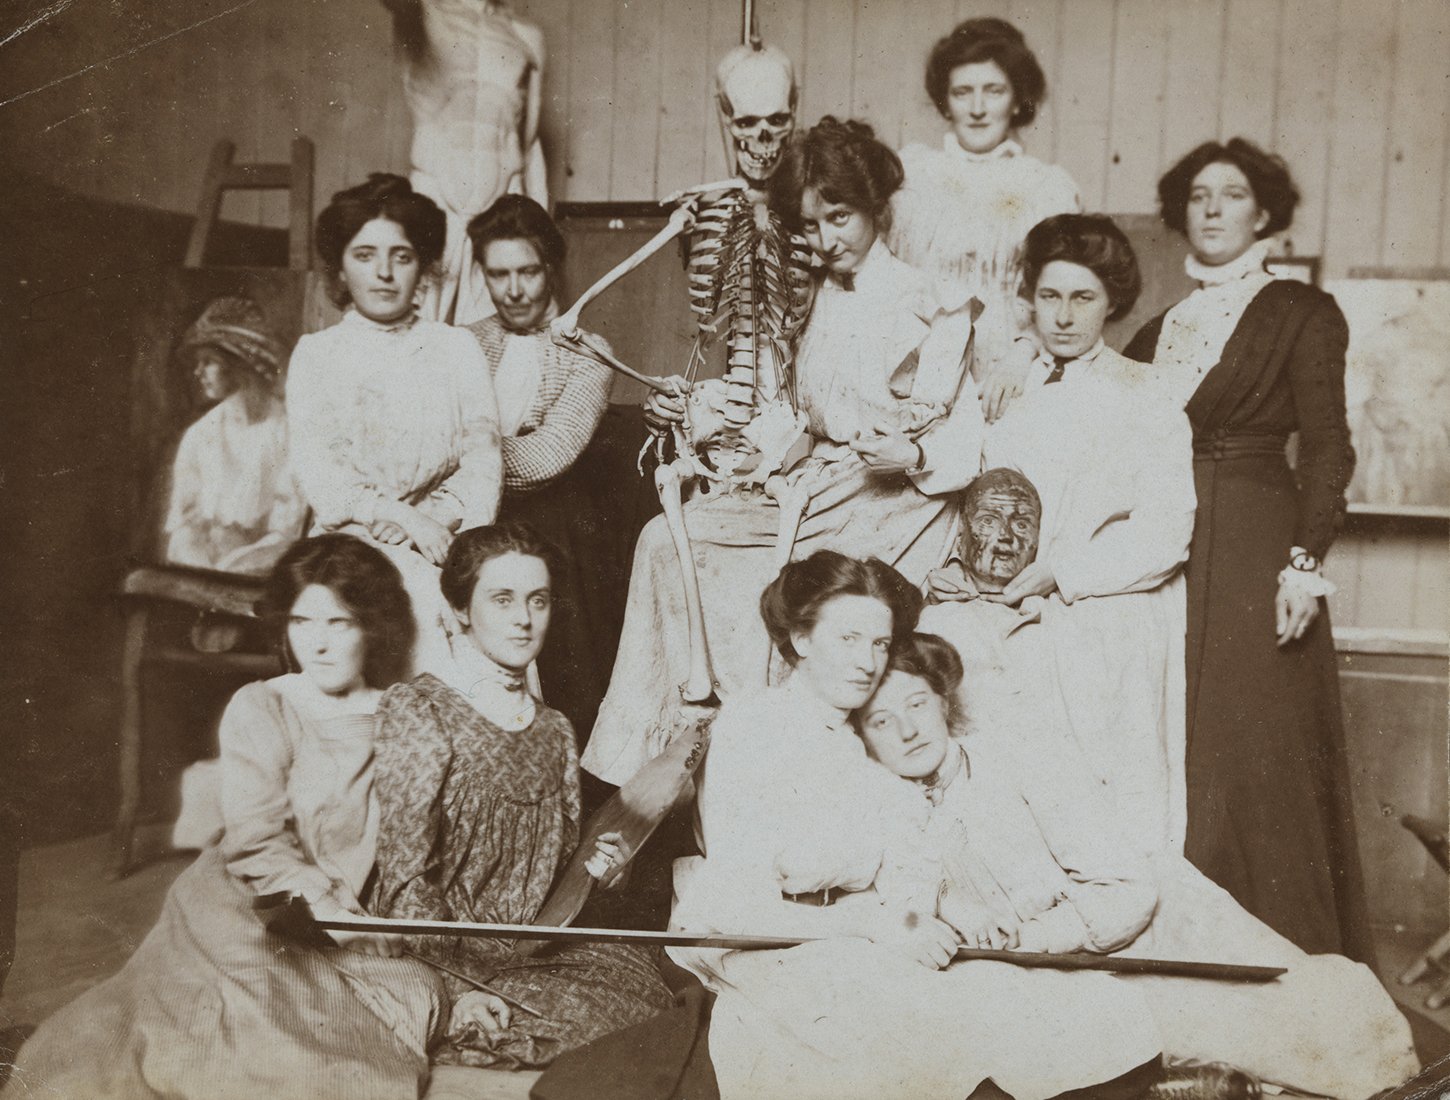 Vintage black and white photo of women posing with a medical skeleton model